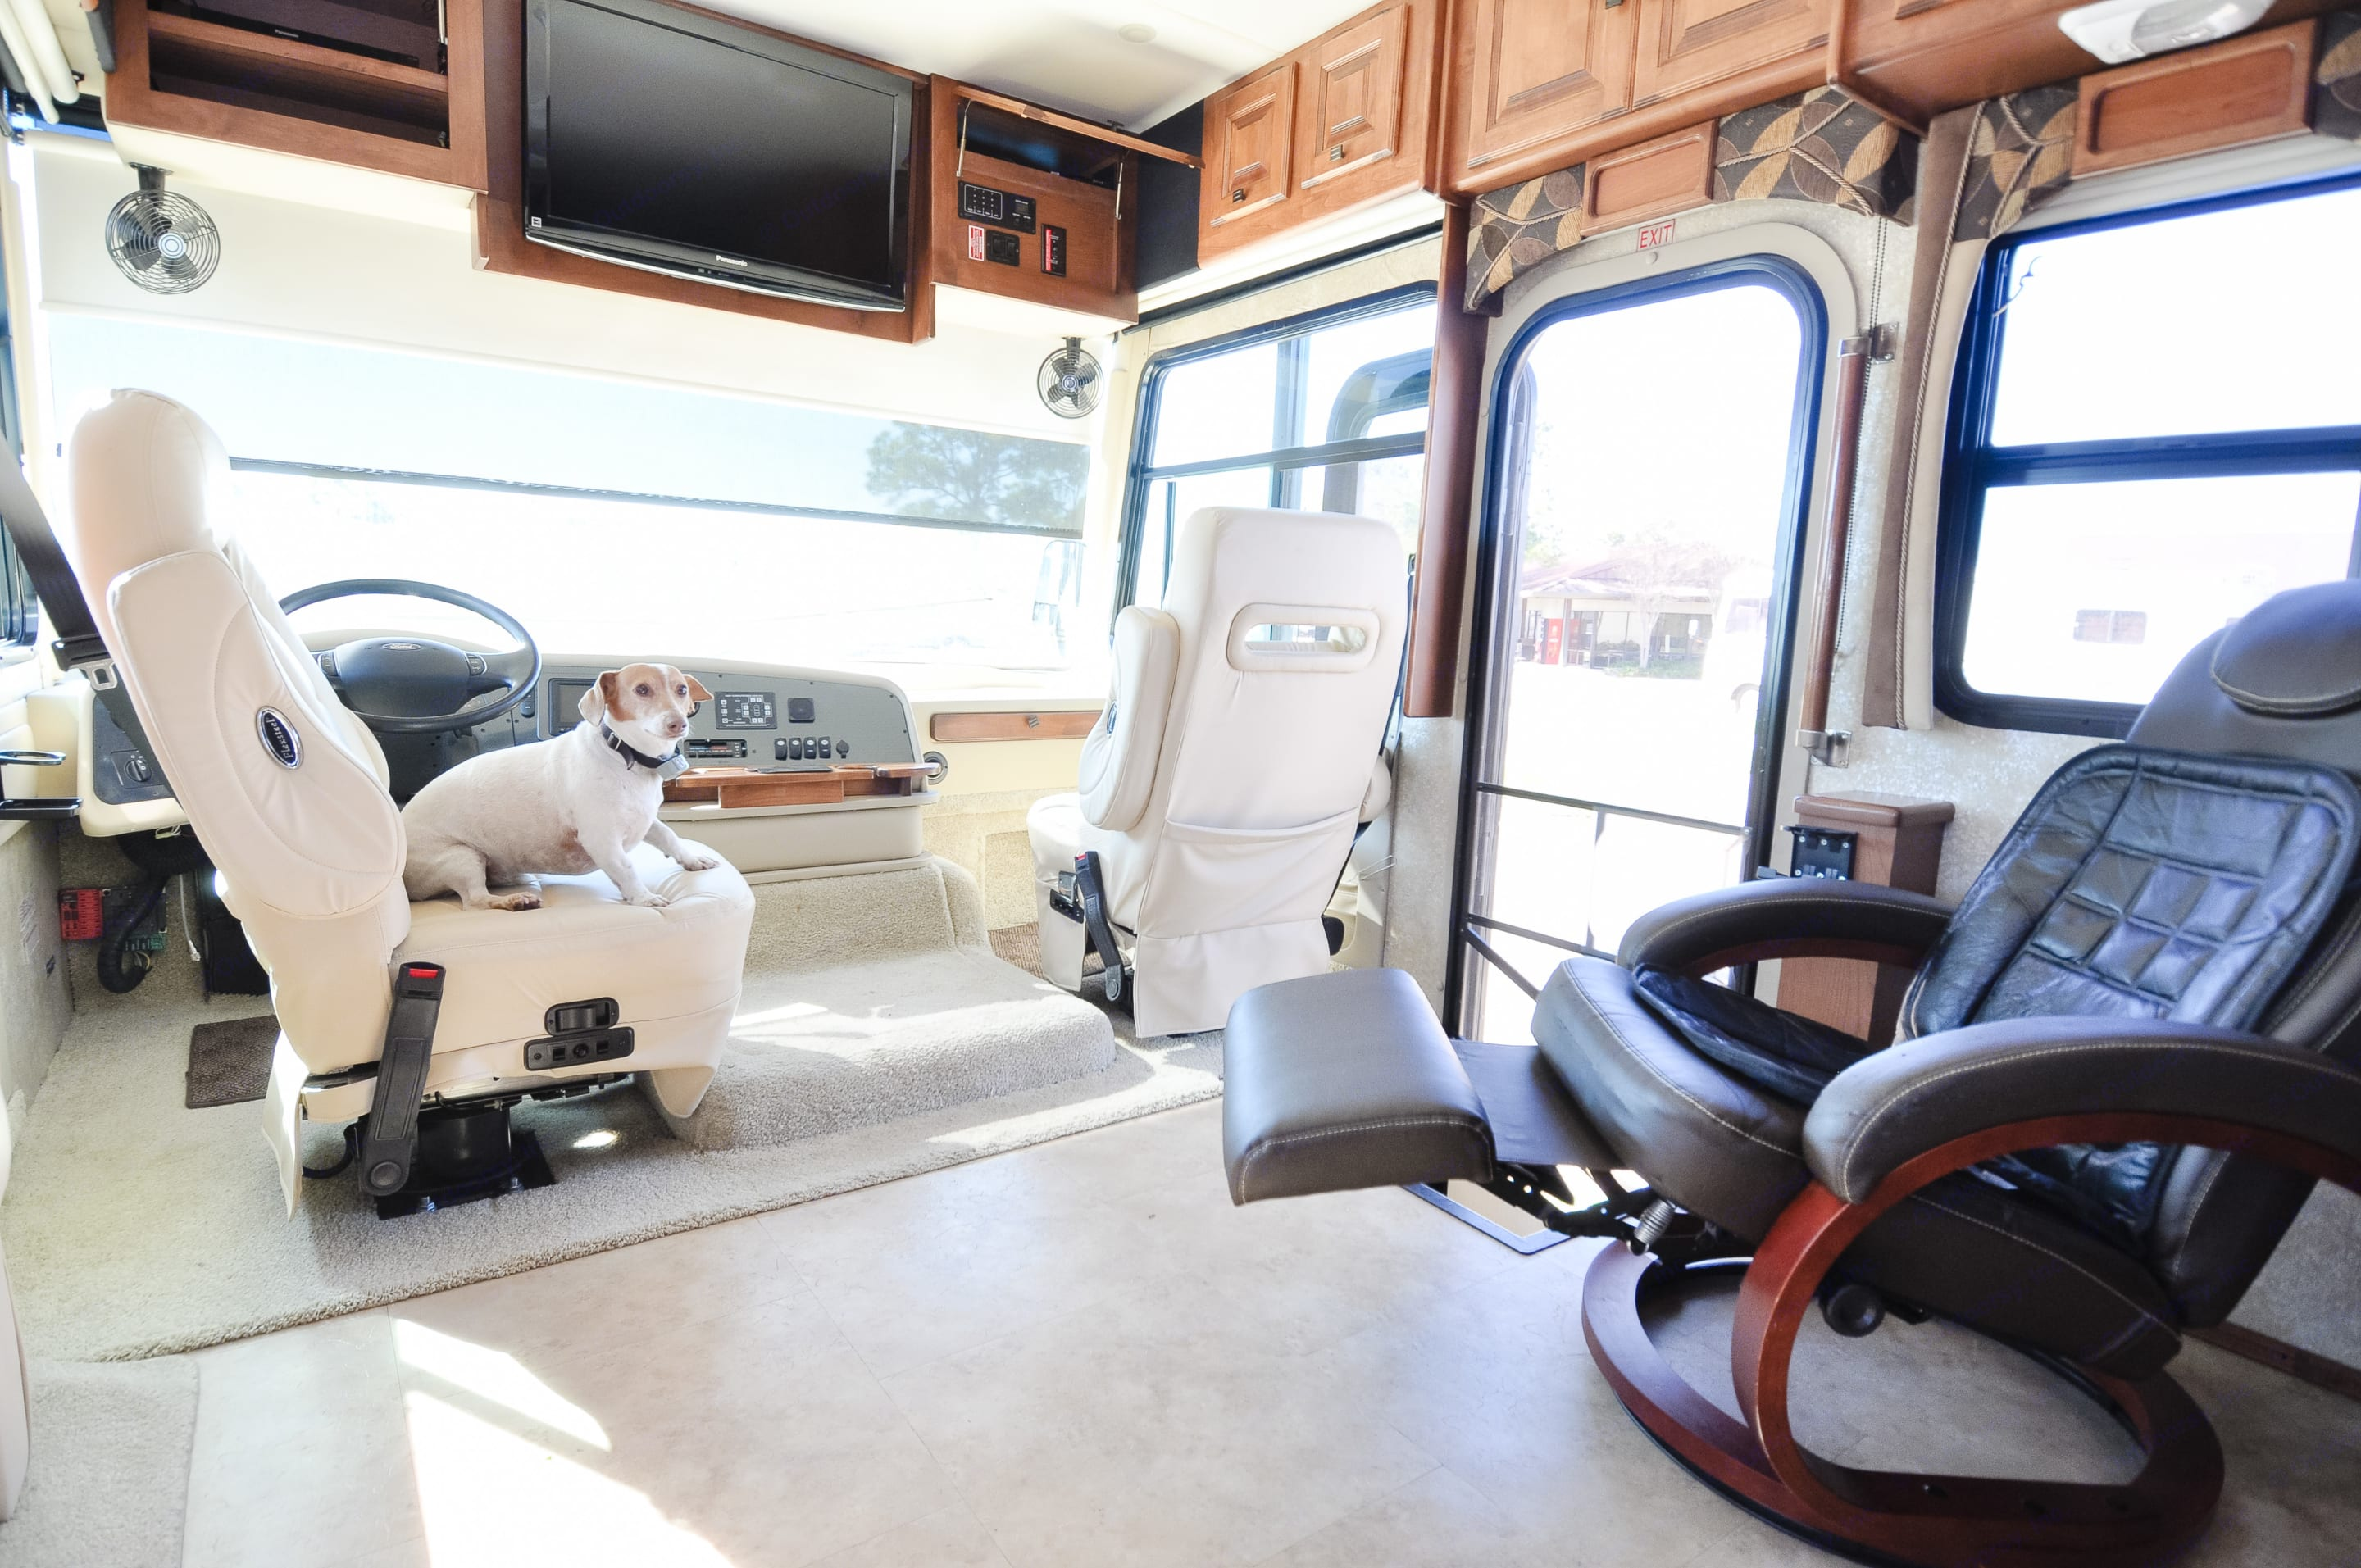 Captains chair swivels with extra reclining chair.  PET FRIENDLY (Coco). Tiffin Motorhomes Allegro 2011